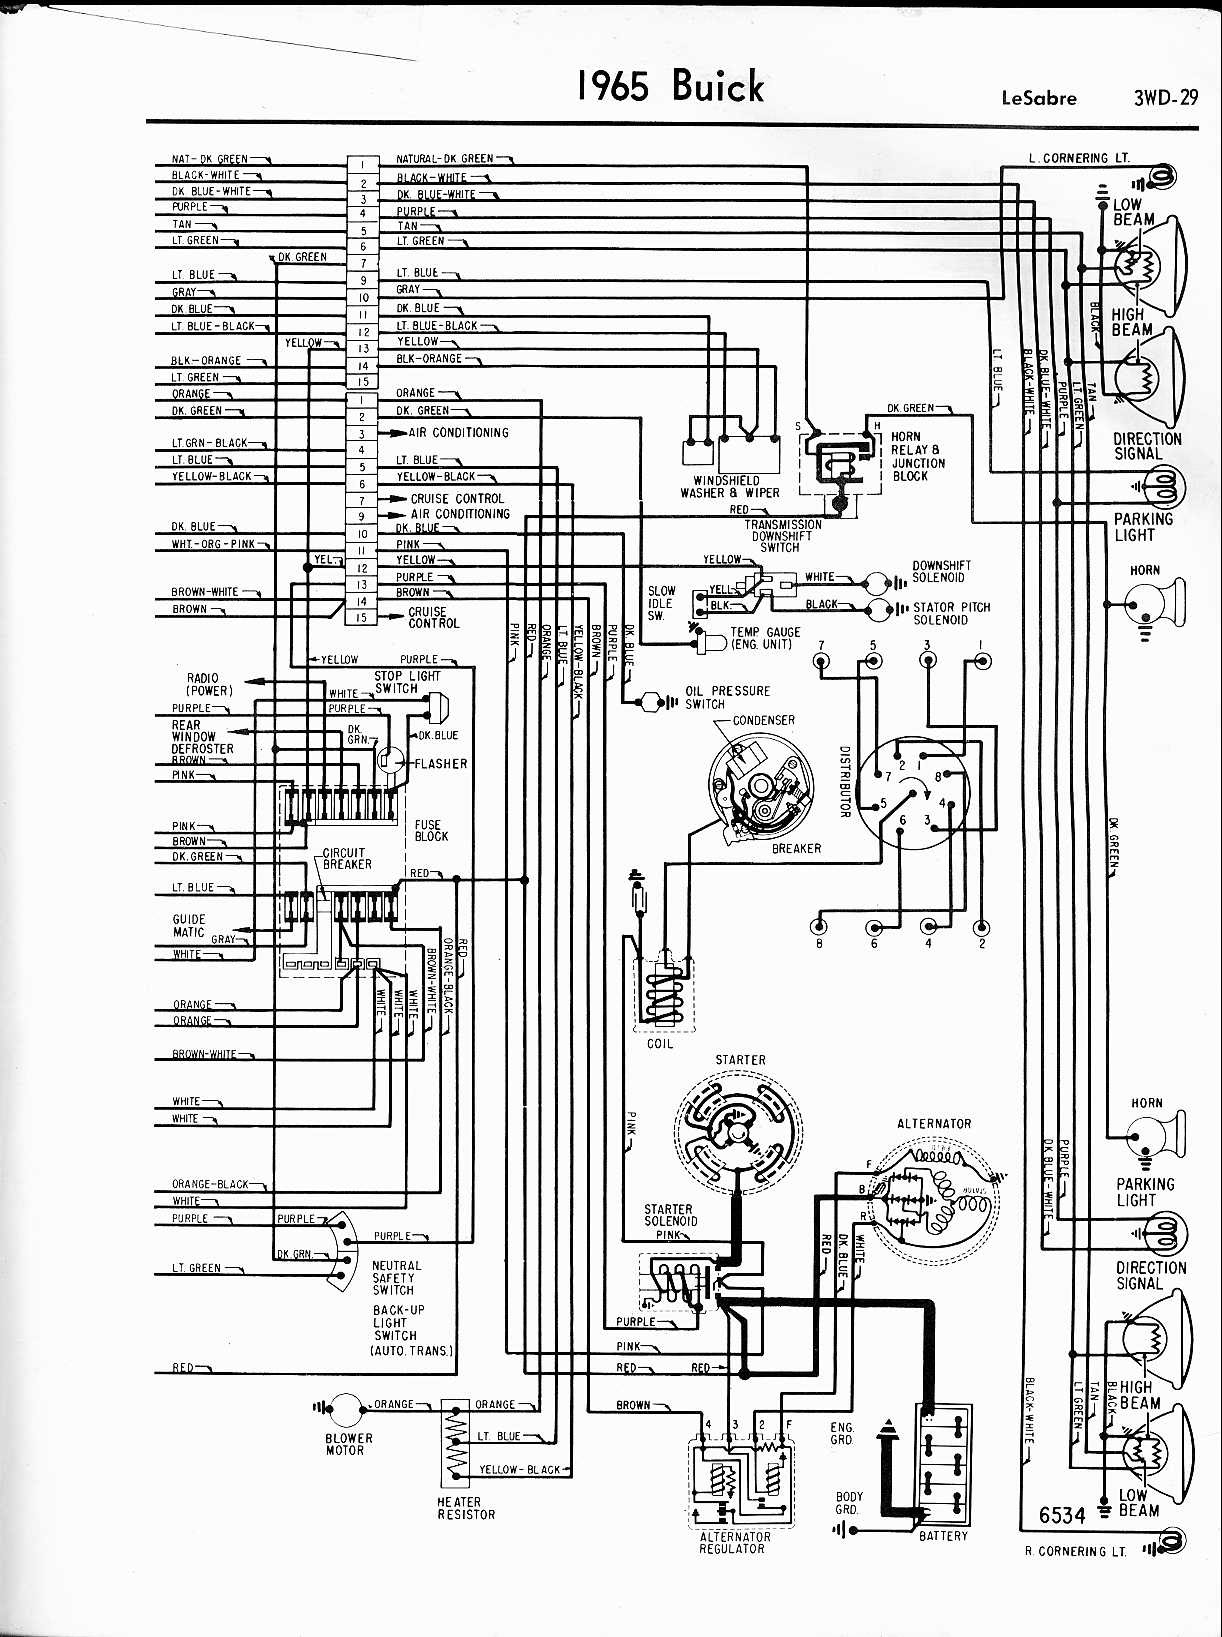 Basic Headlight Wiring Diagram Buick Wiring Diagram Wide Resource A Wide Resource A Led Illumina It